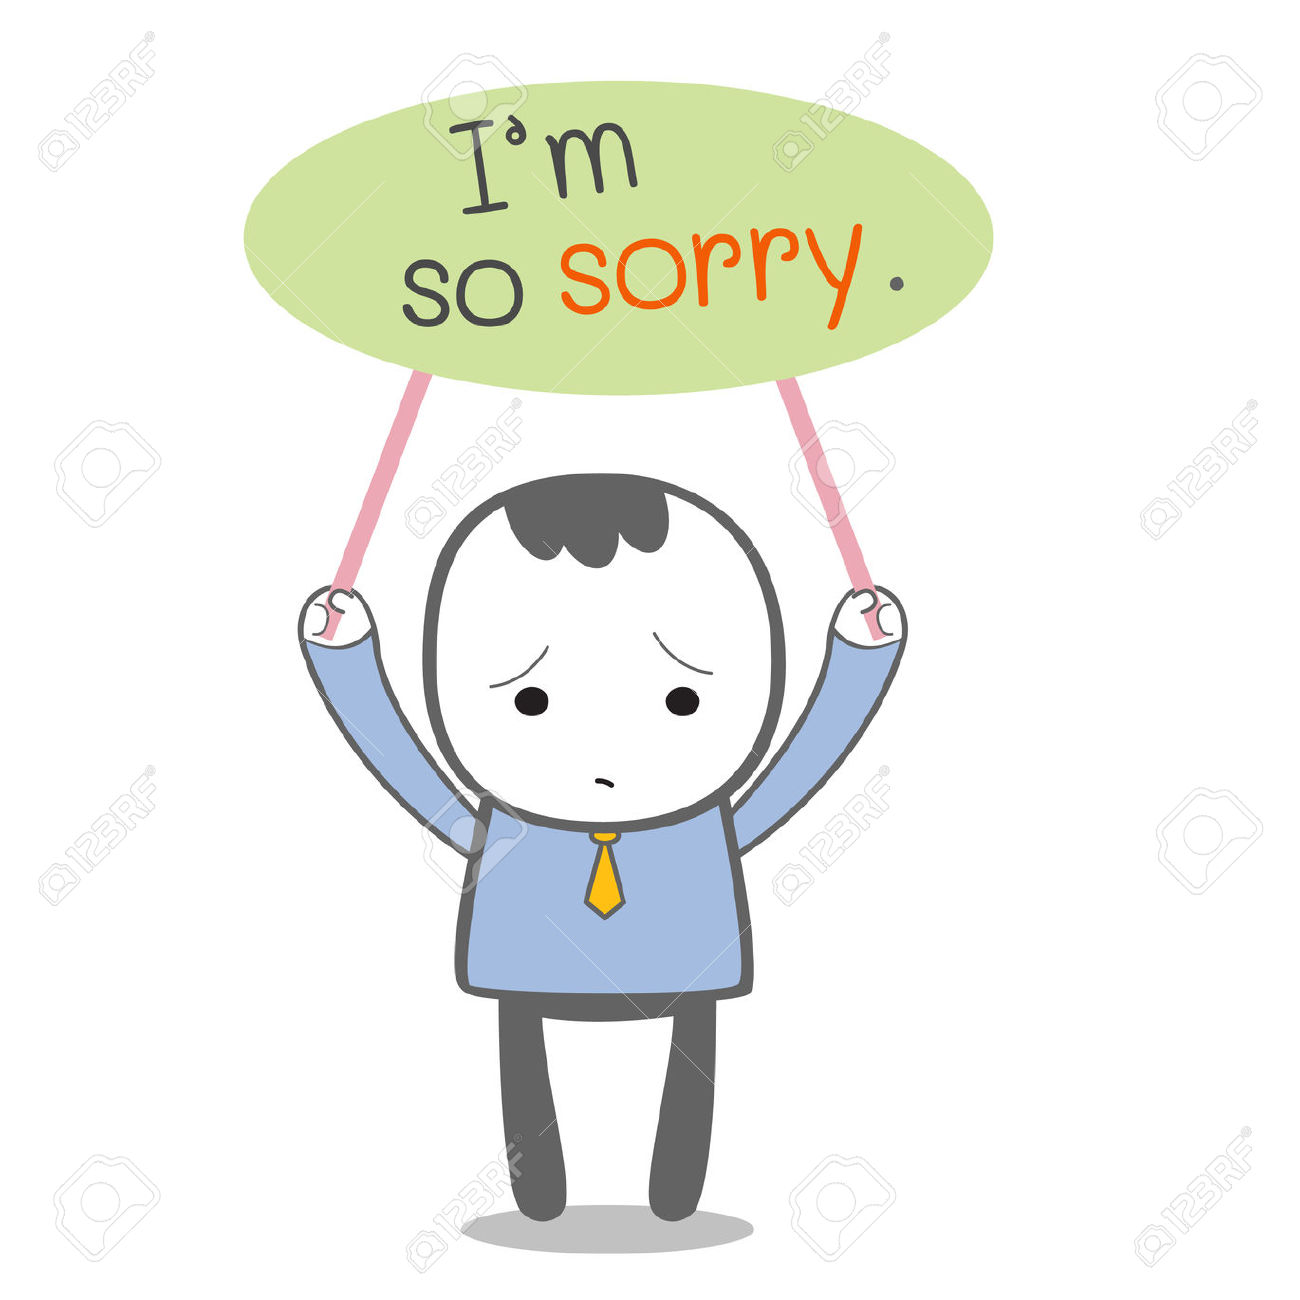 410 Sorry free clipart.